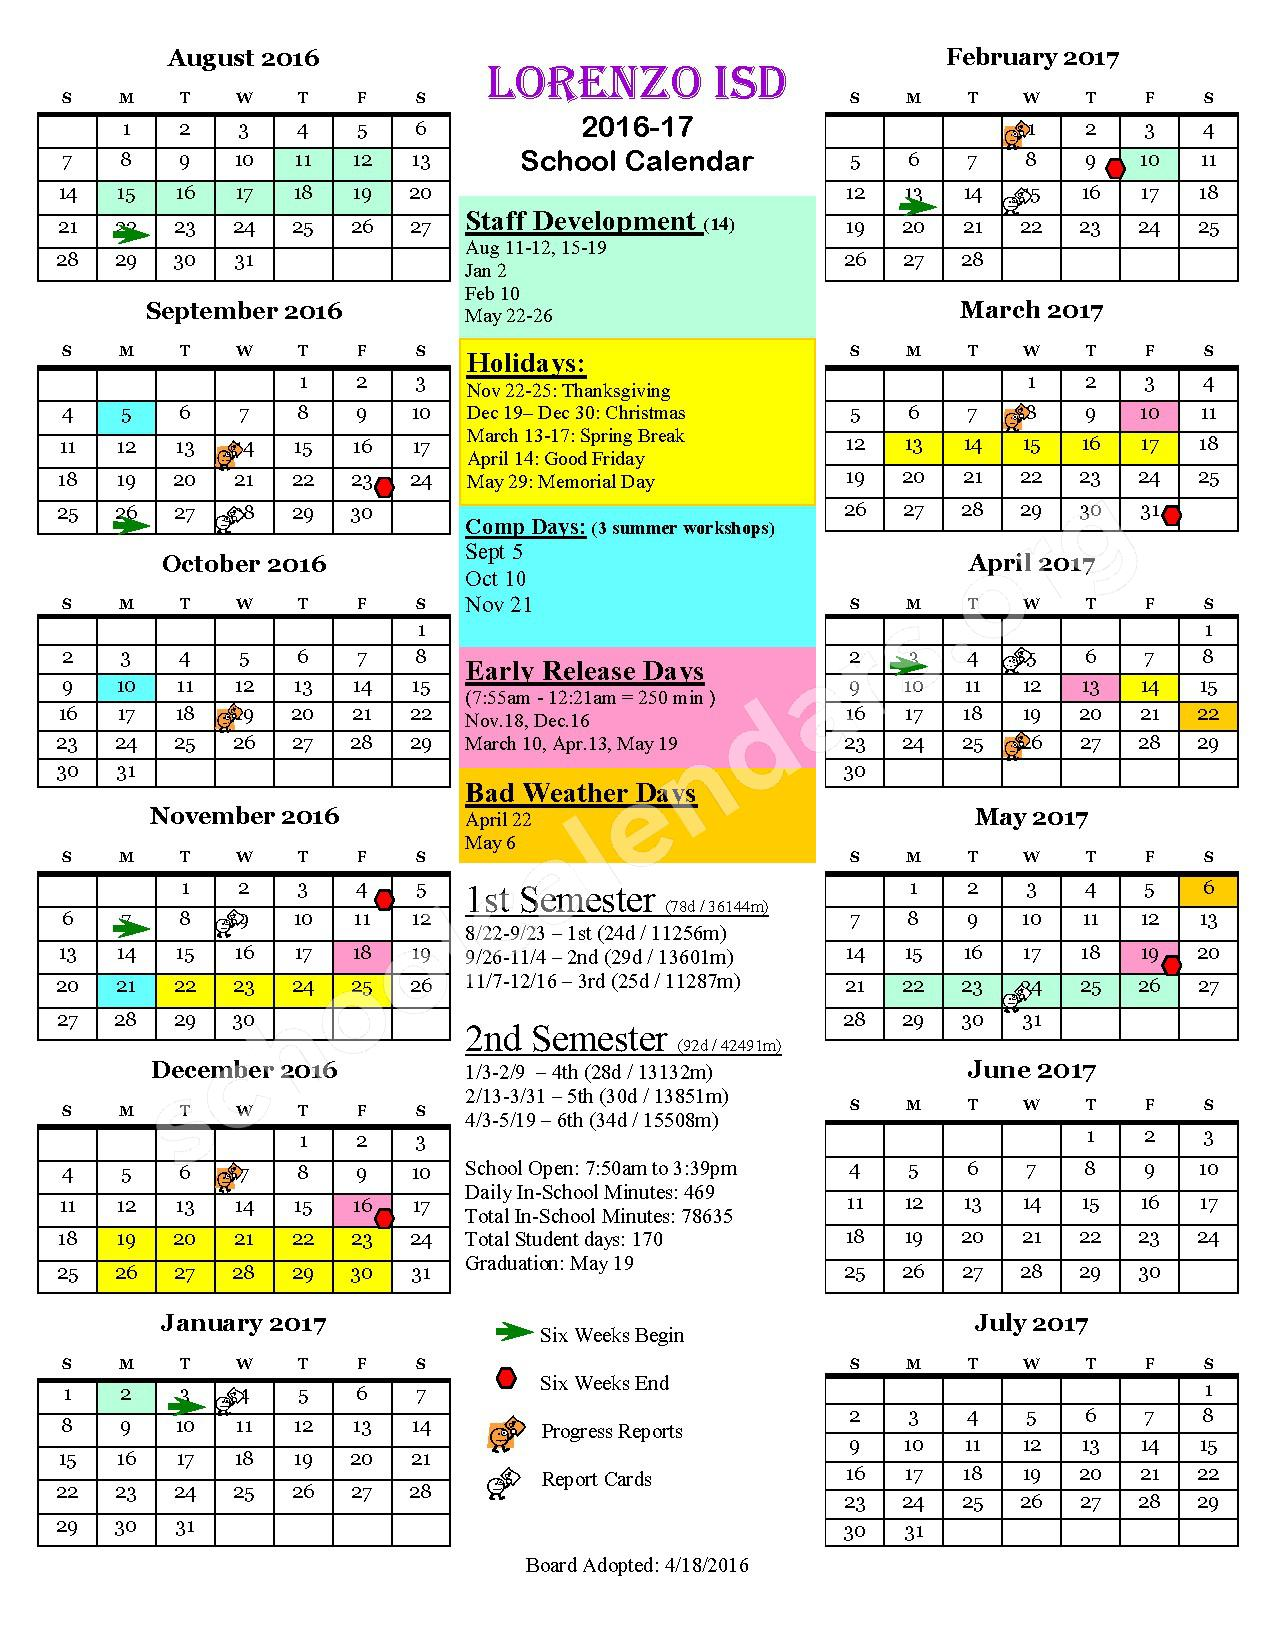 Lorenzo Independent School District Calendars Texas